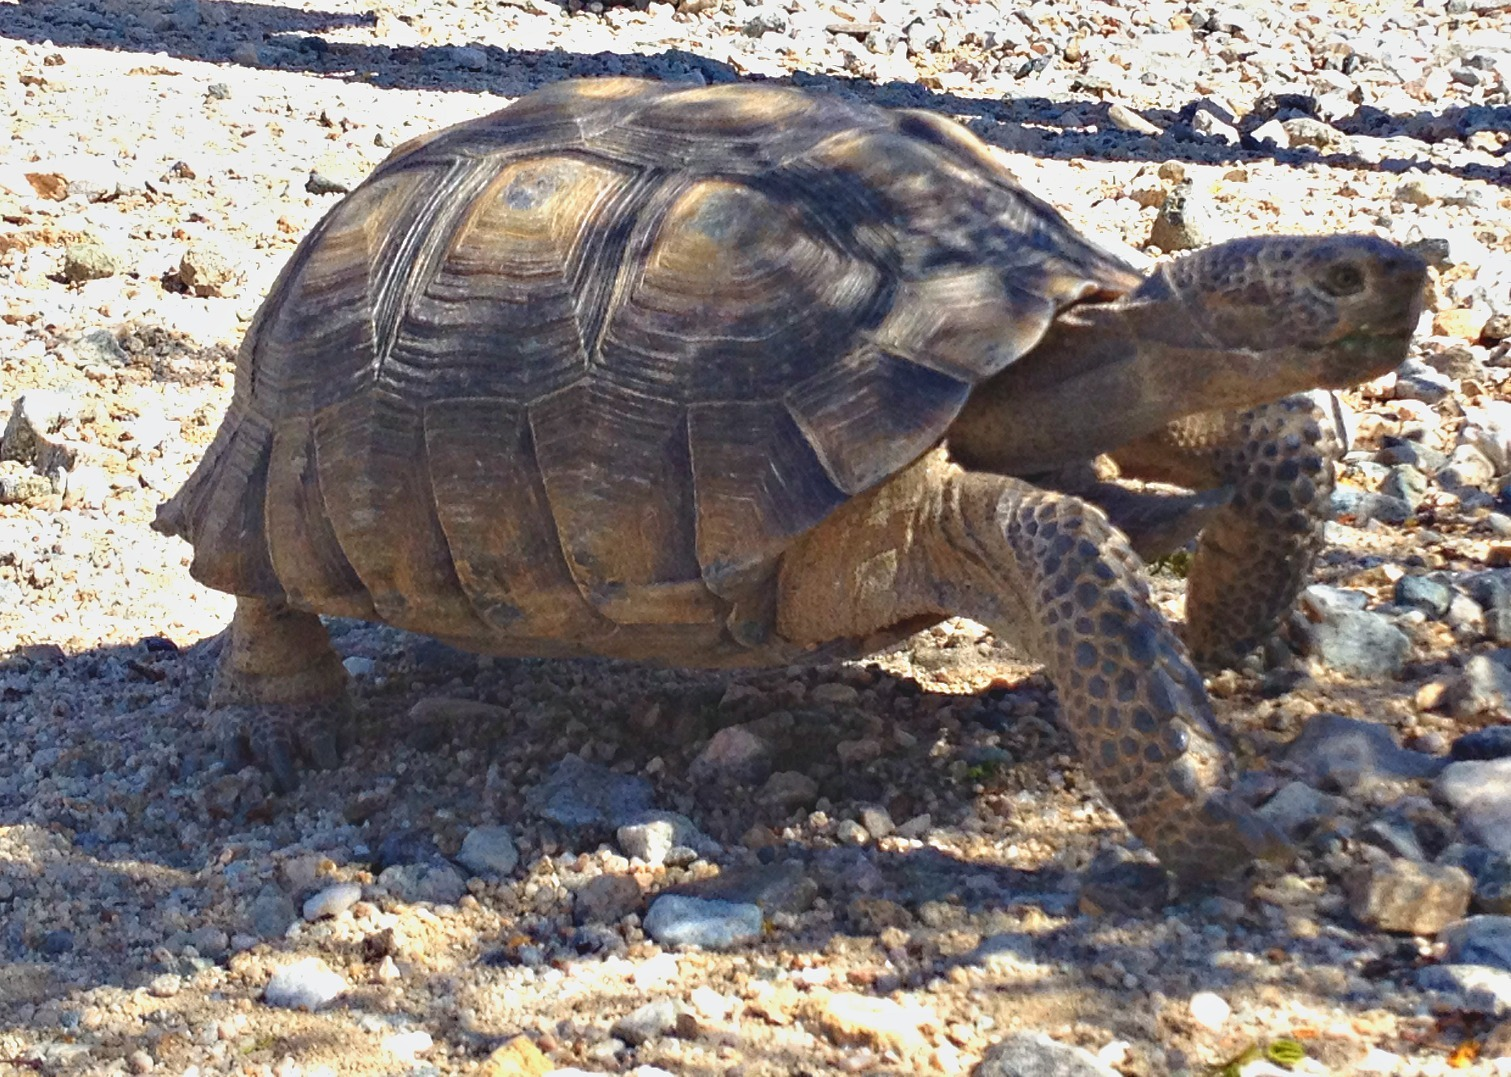 Desert tortoise at the Cholla Cactus Garden, Joshua Tree